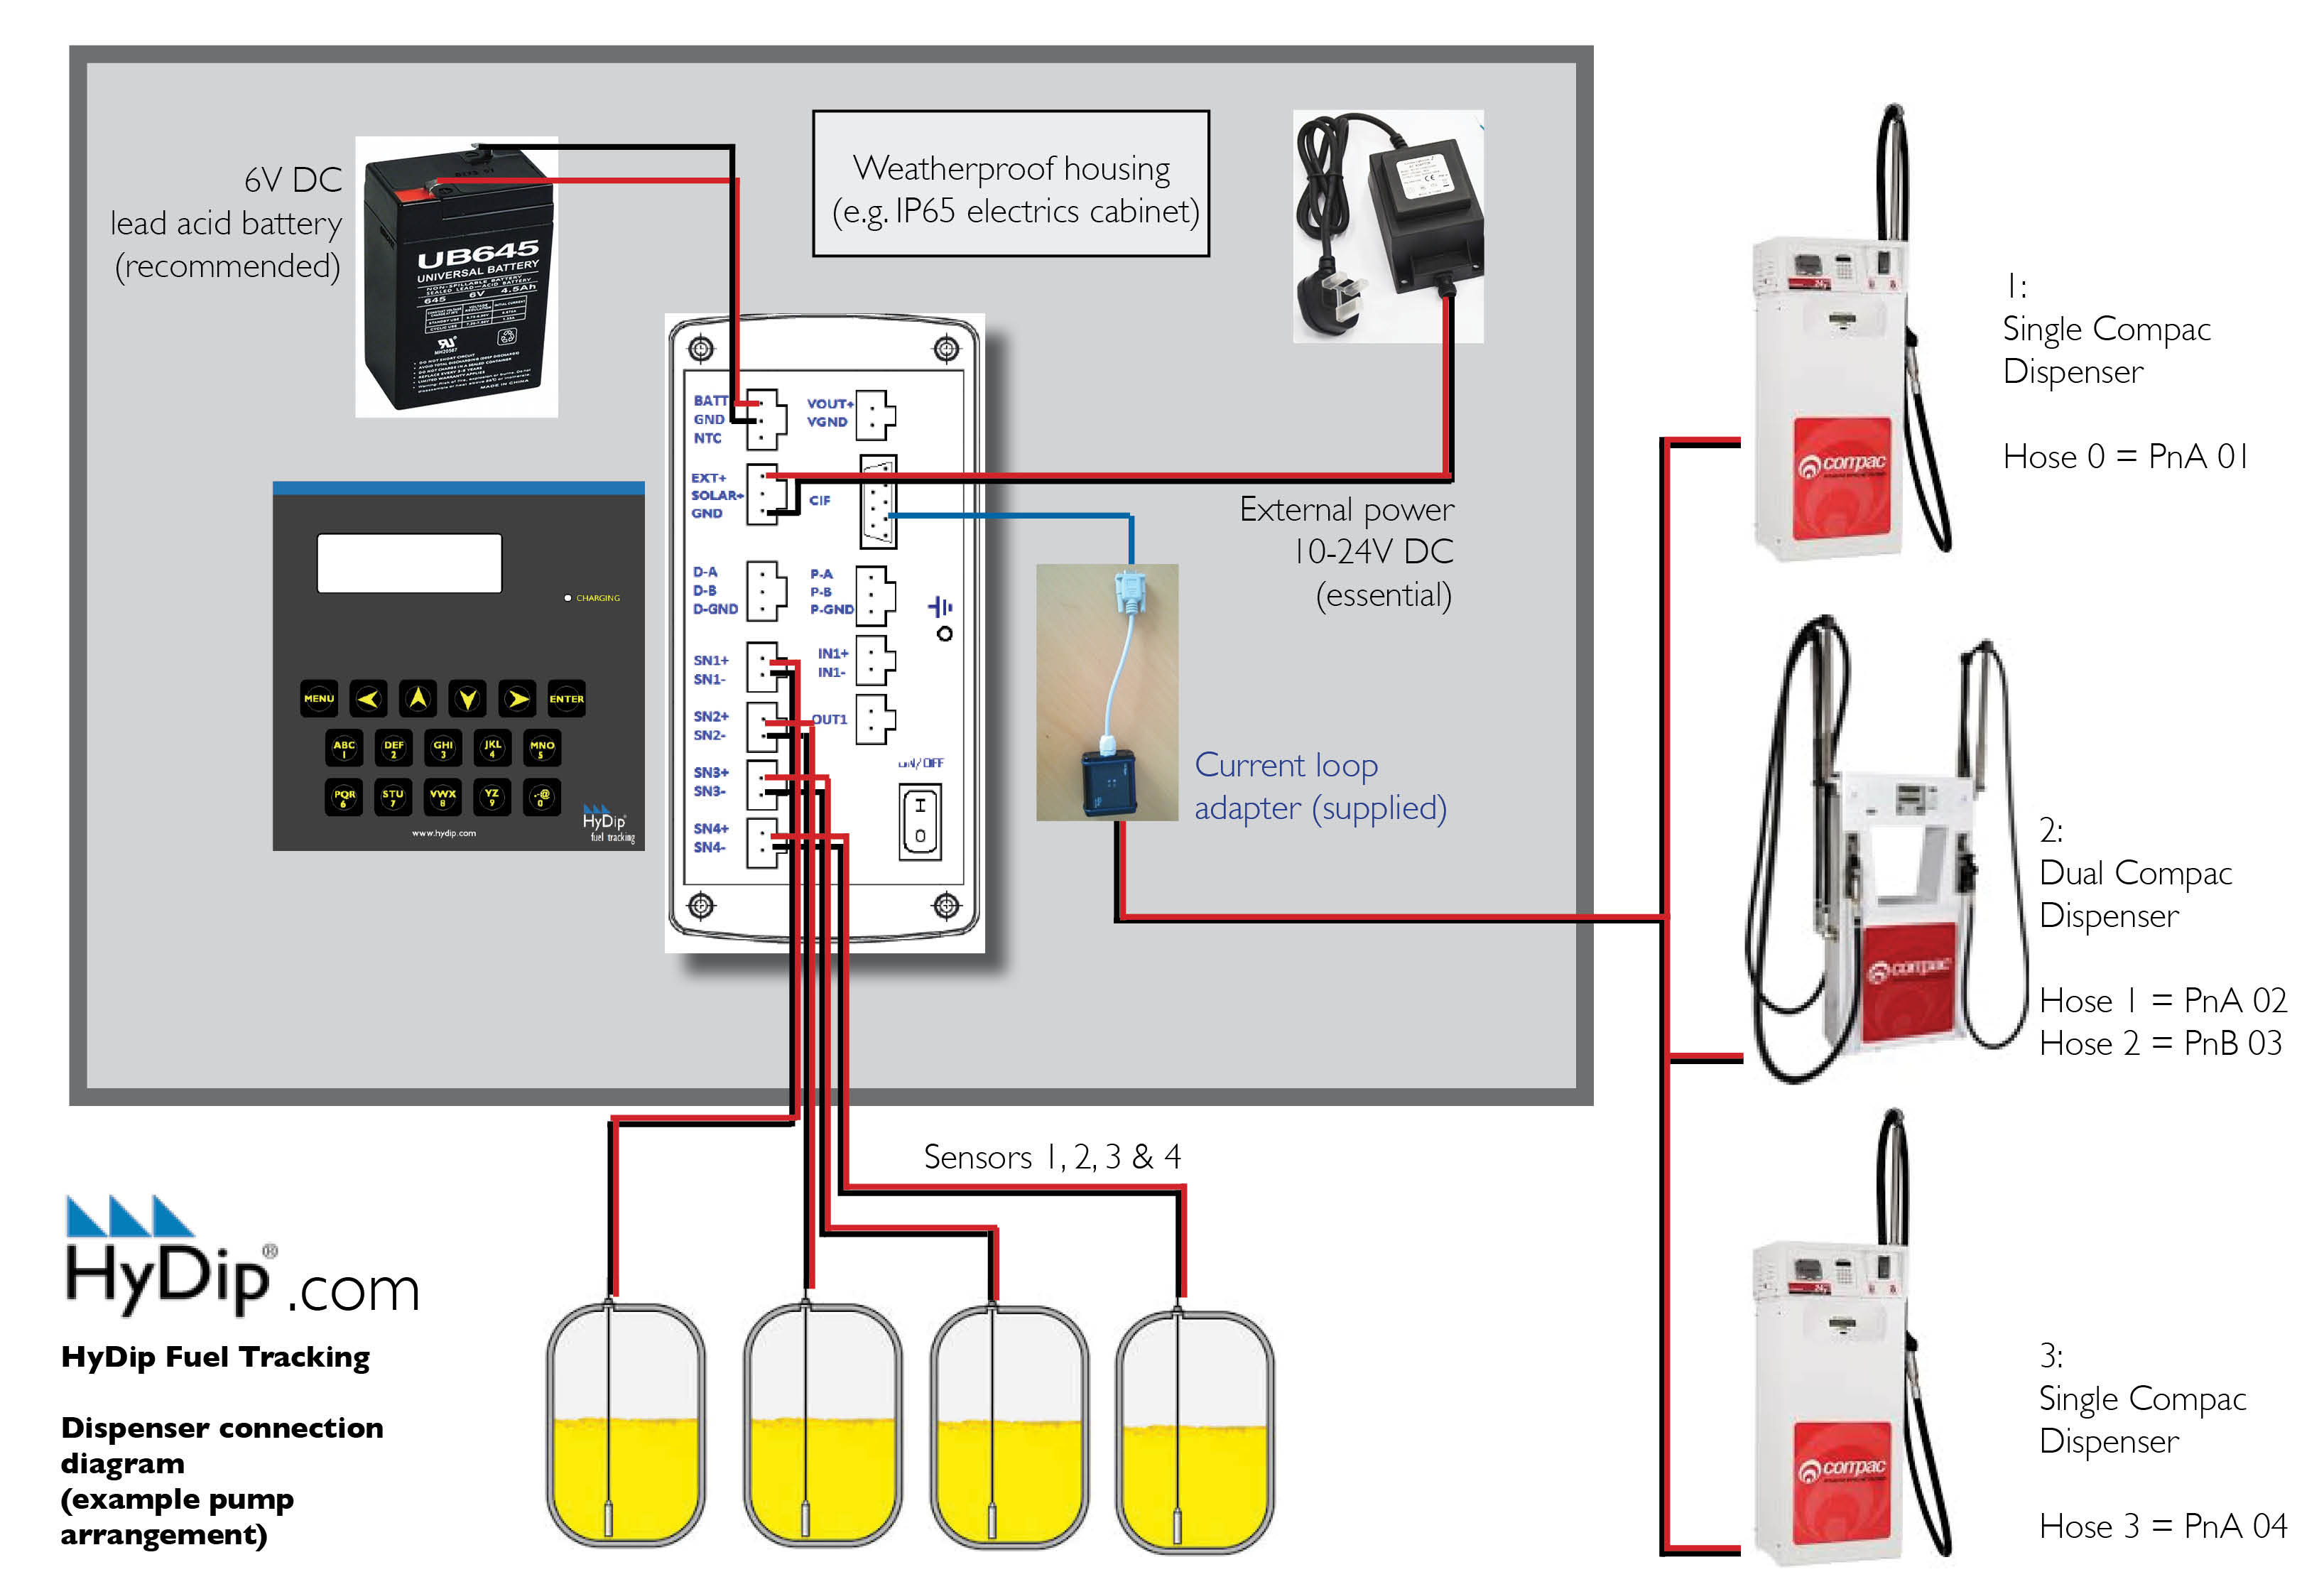 Compac Dispensers Current Loop Wiring Diagram Hft Hydip Fuel Tracking Device Wired To An Example Arrangement Of